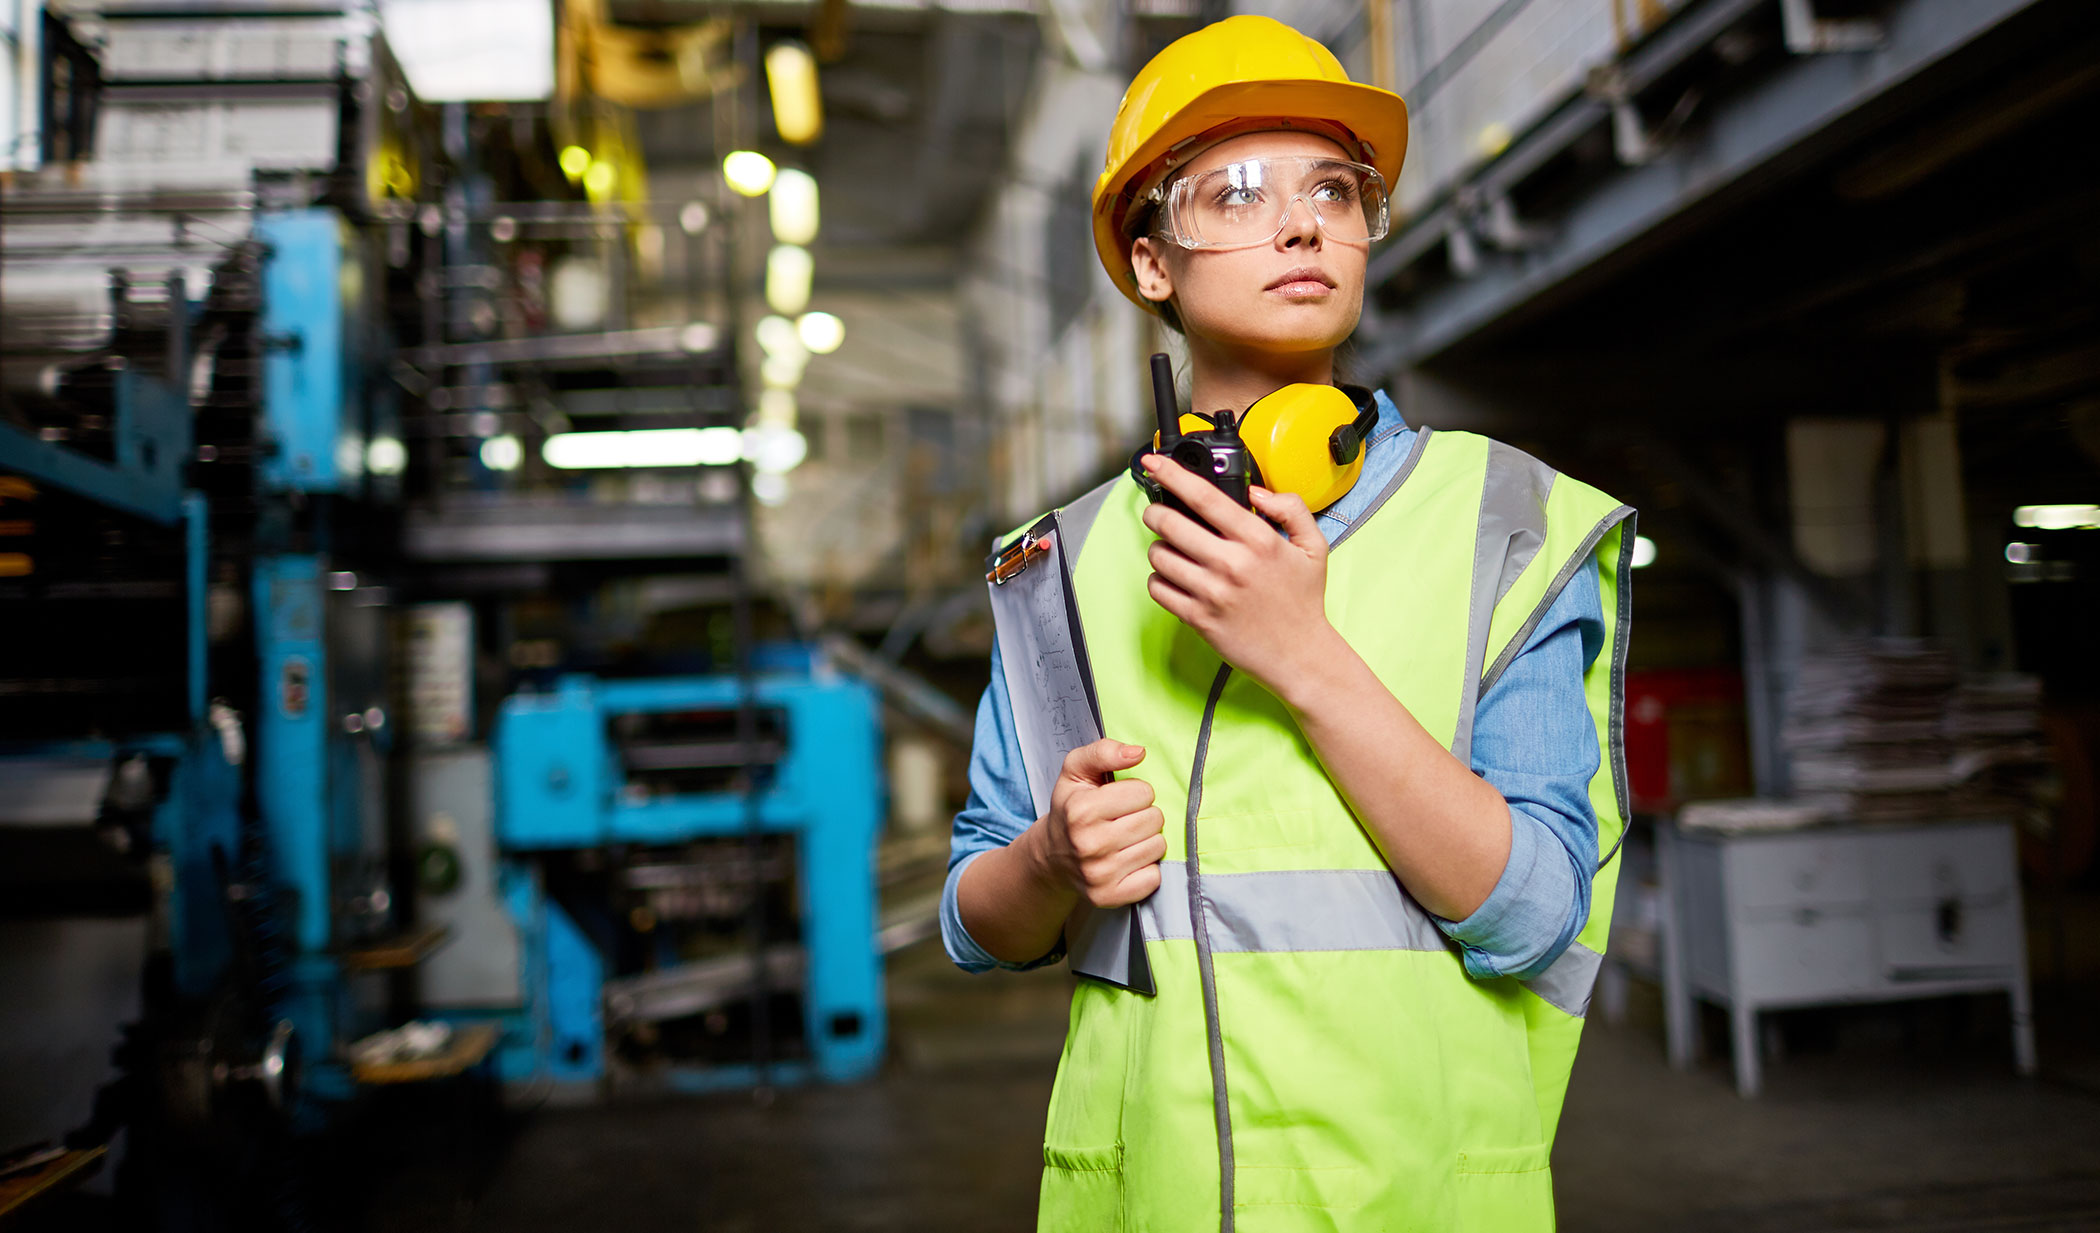 4 Common Food Industry Workplace Safety Mistakes